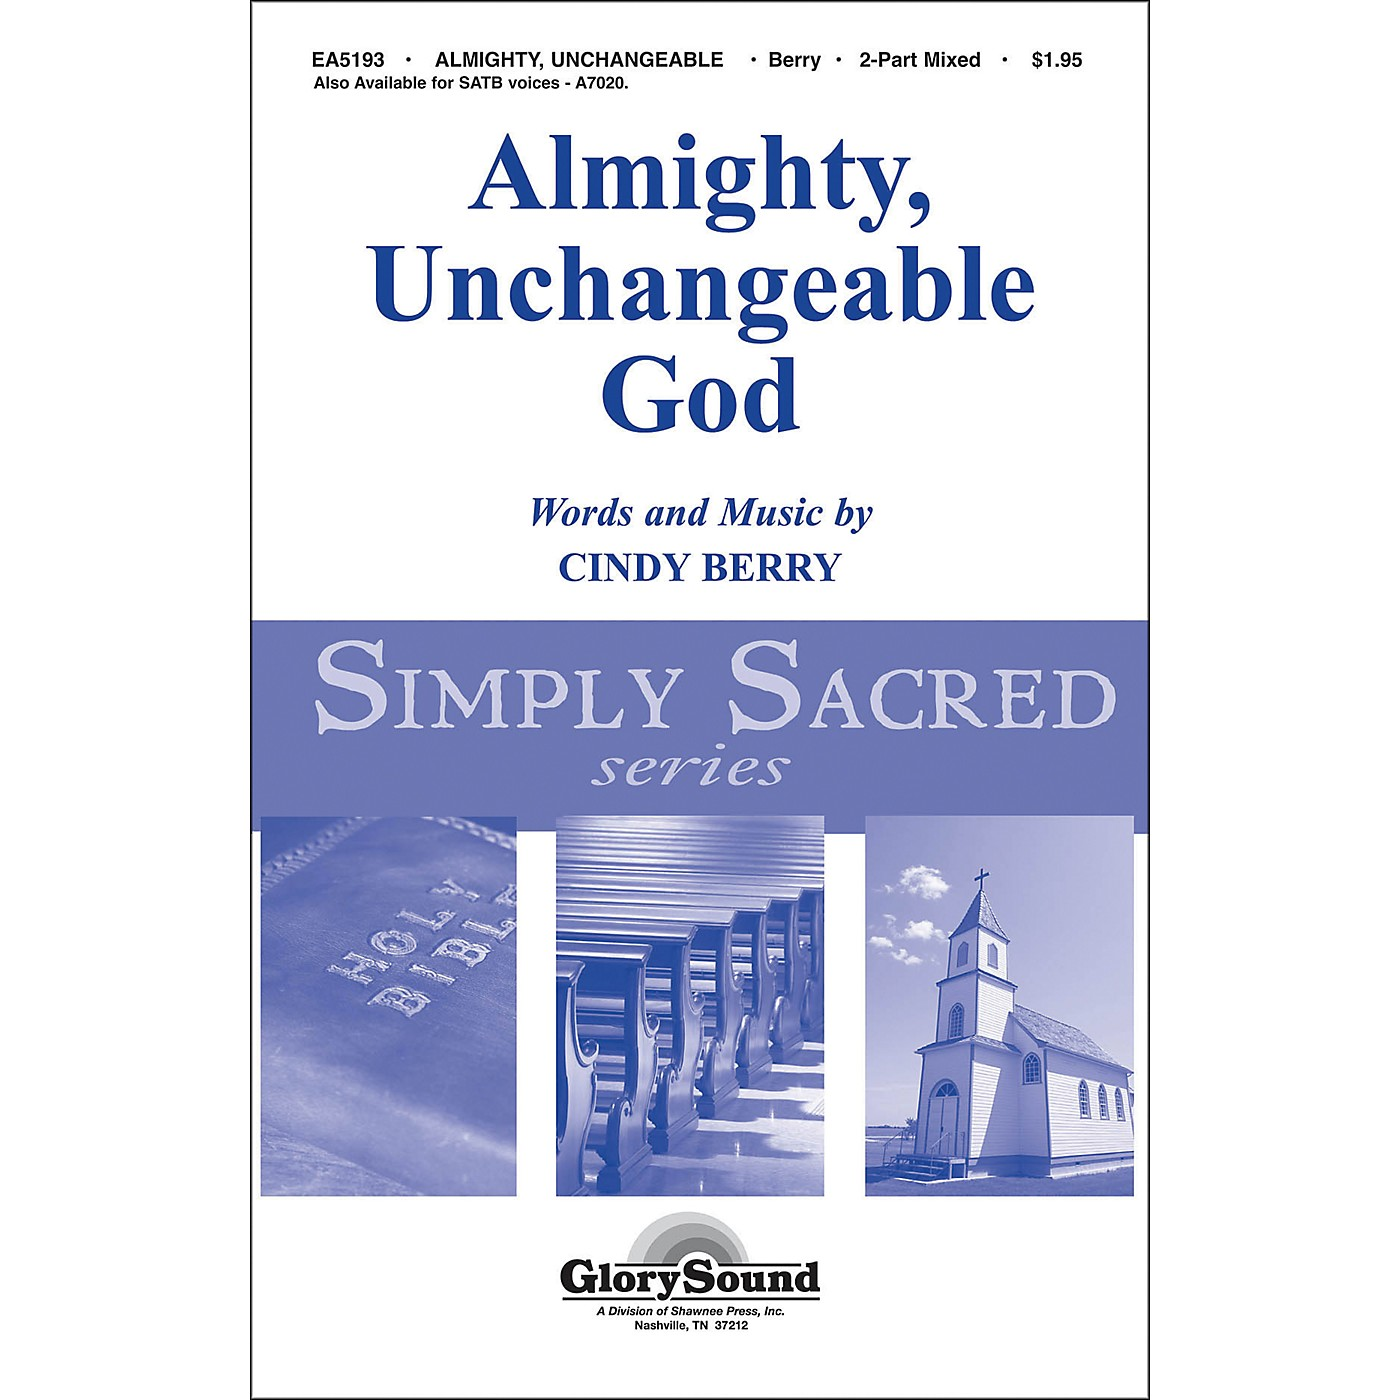 Hal Leonard Almighty Unchangeable God 2-Part Choral Mixed thumbnail